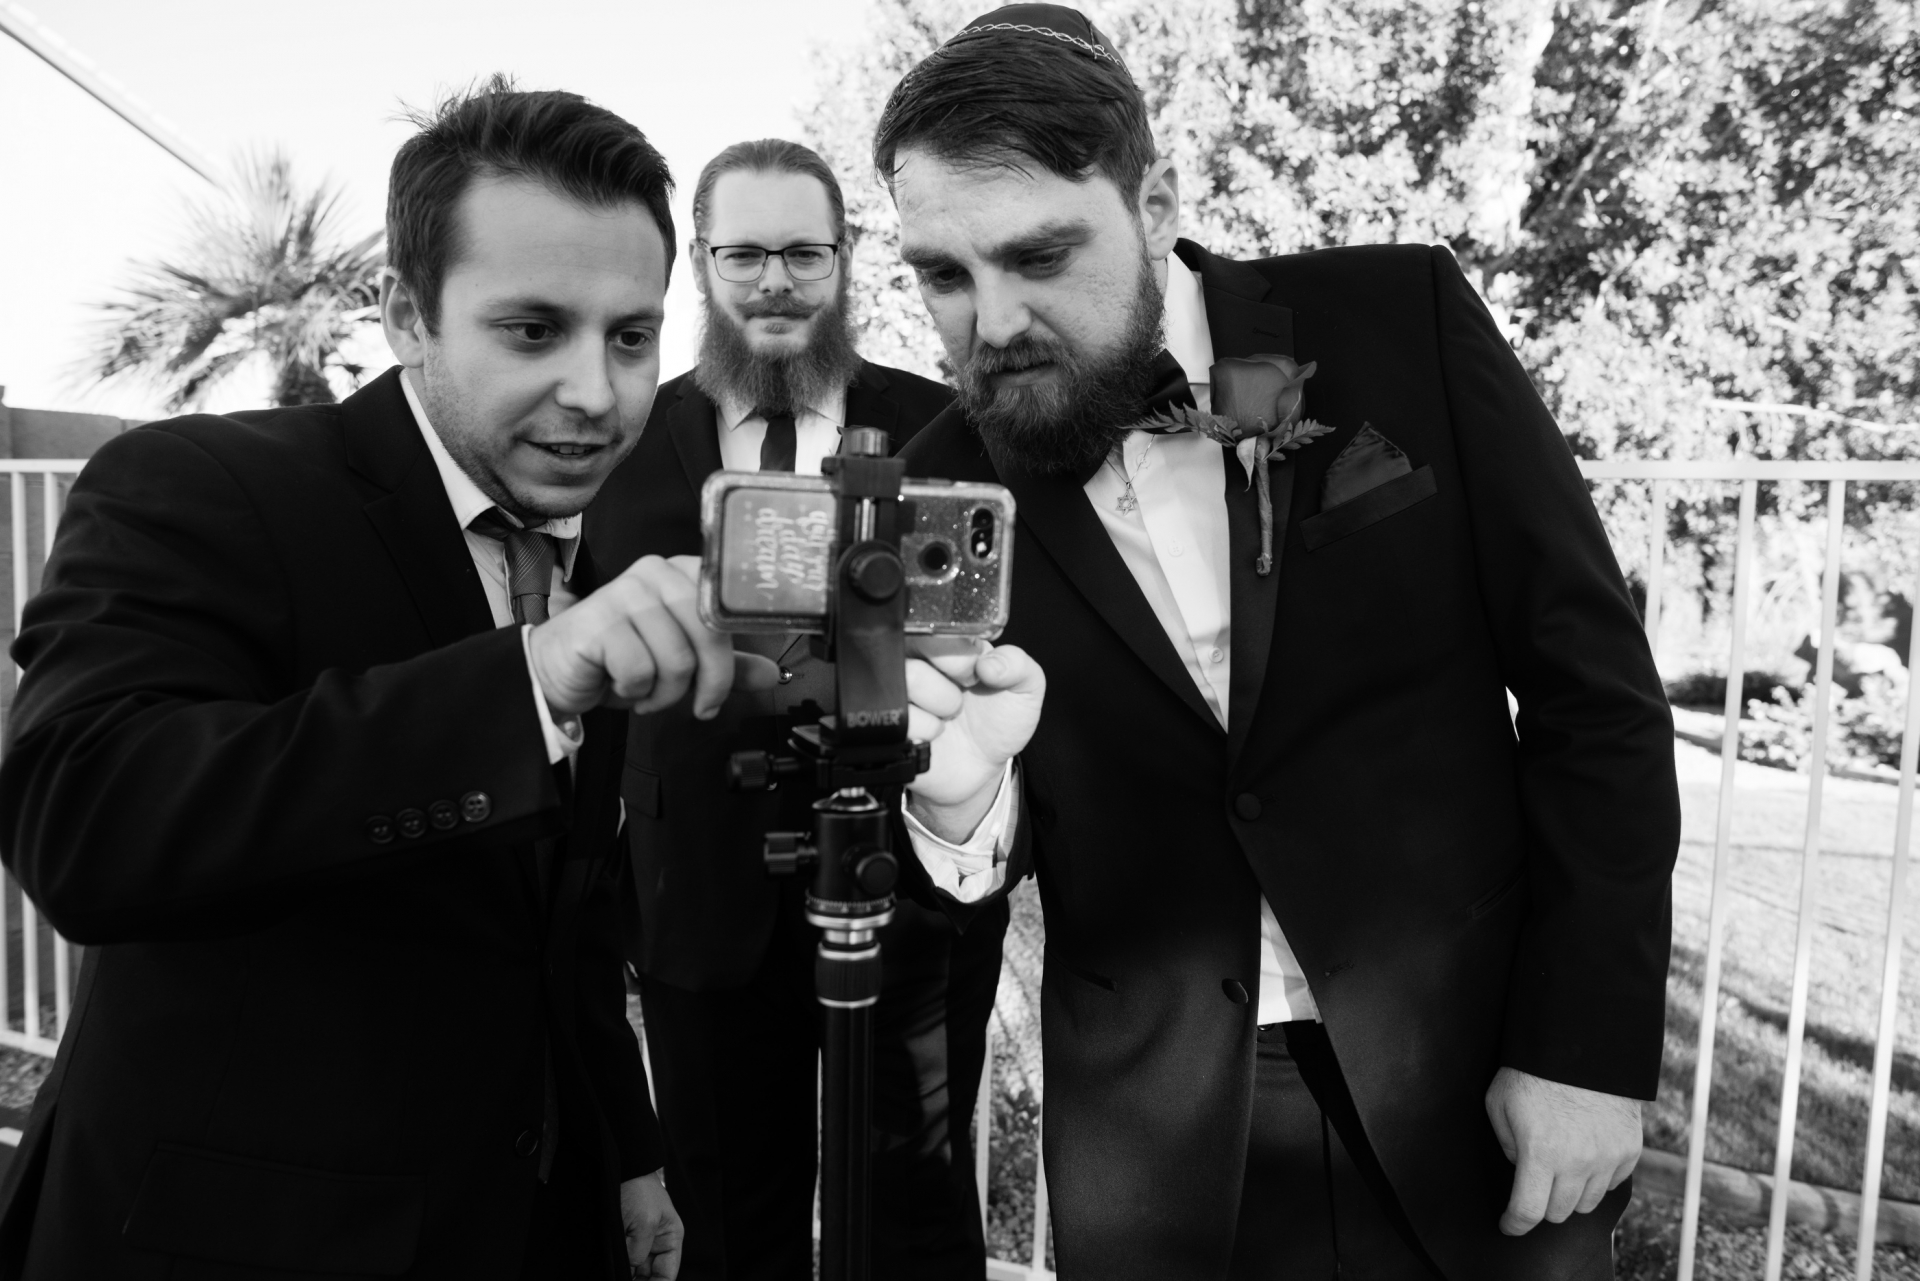 Wedding Photographers for Phoenix, AZ | The groom and his friends configure a phone in order to broadcast the wedding ceremony